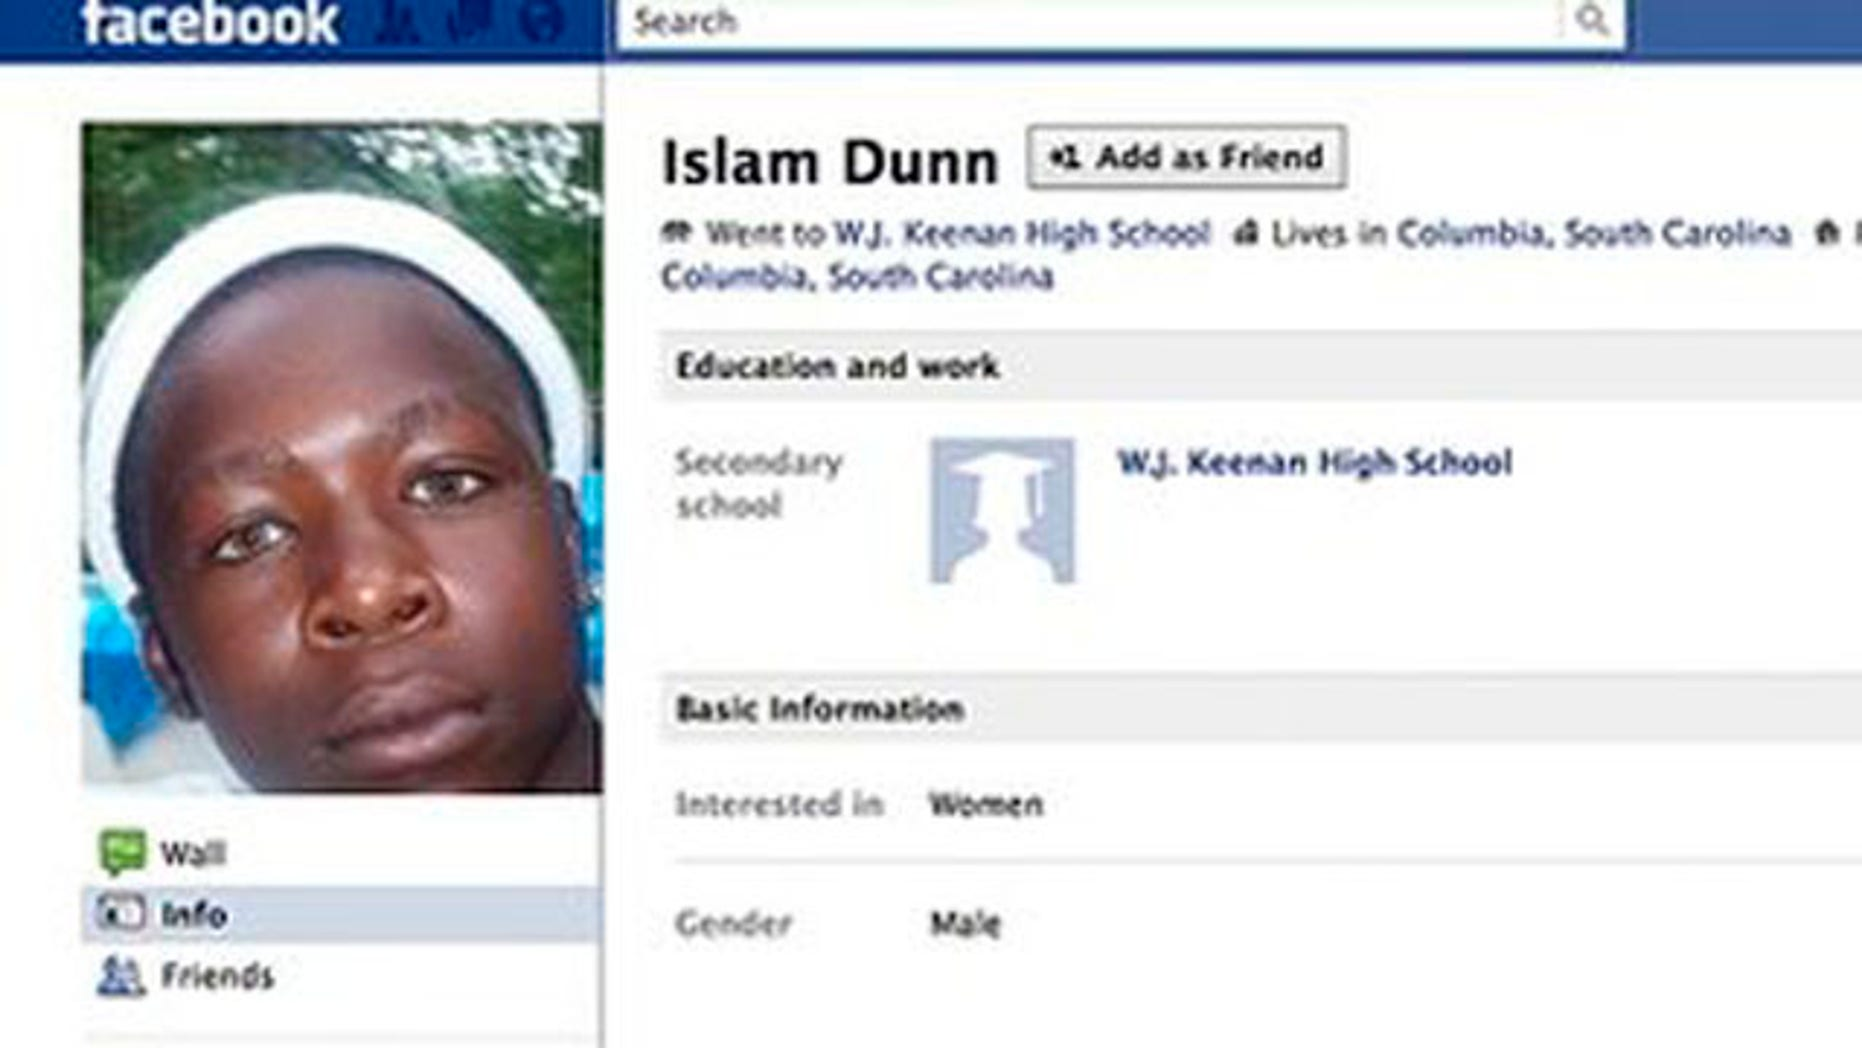 In this undated frame-grab image from Facebook, Islam Dunn's Facebook page is seen.